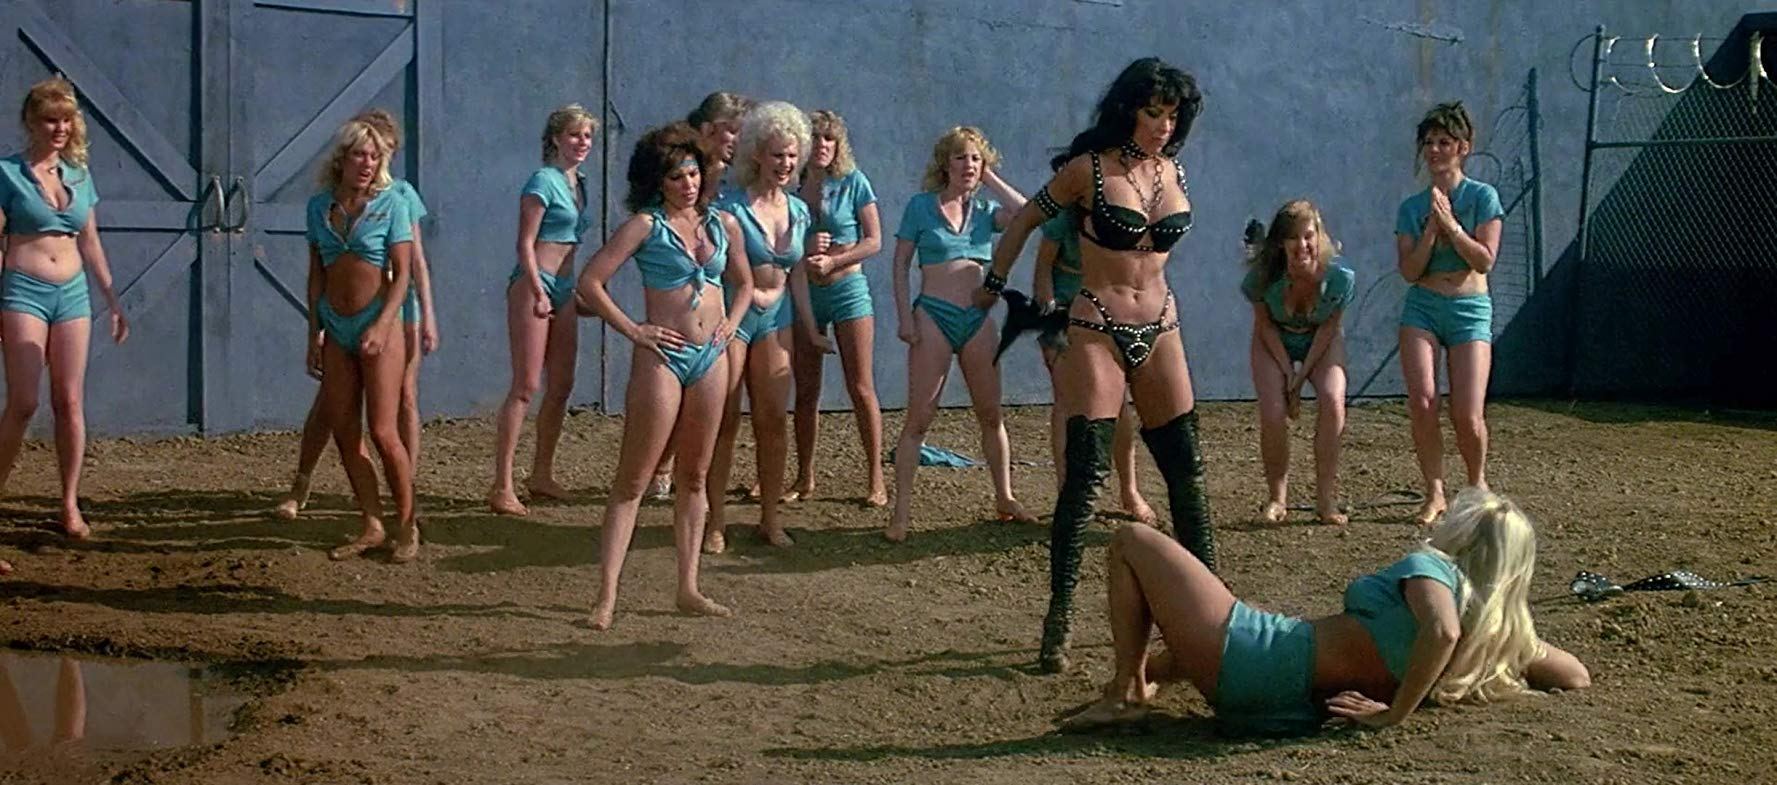 An entirely gratuitous women's prison catight scene with Angelique Pettyjohn (in black leather) standing over Angela Aames in The Lost Empire (1983)